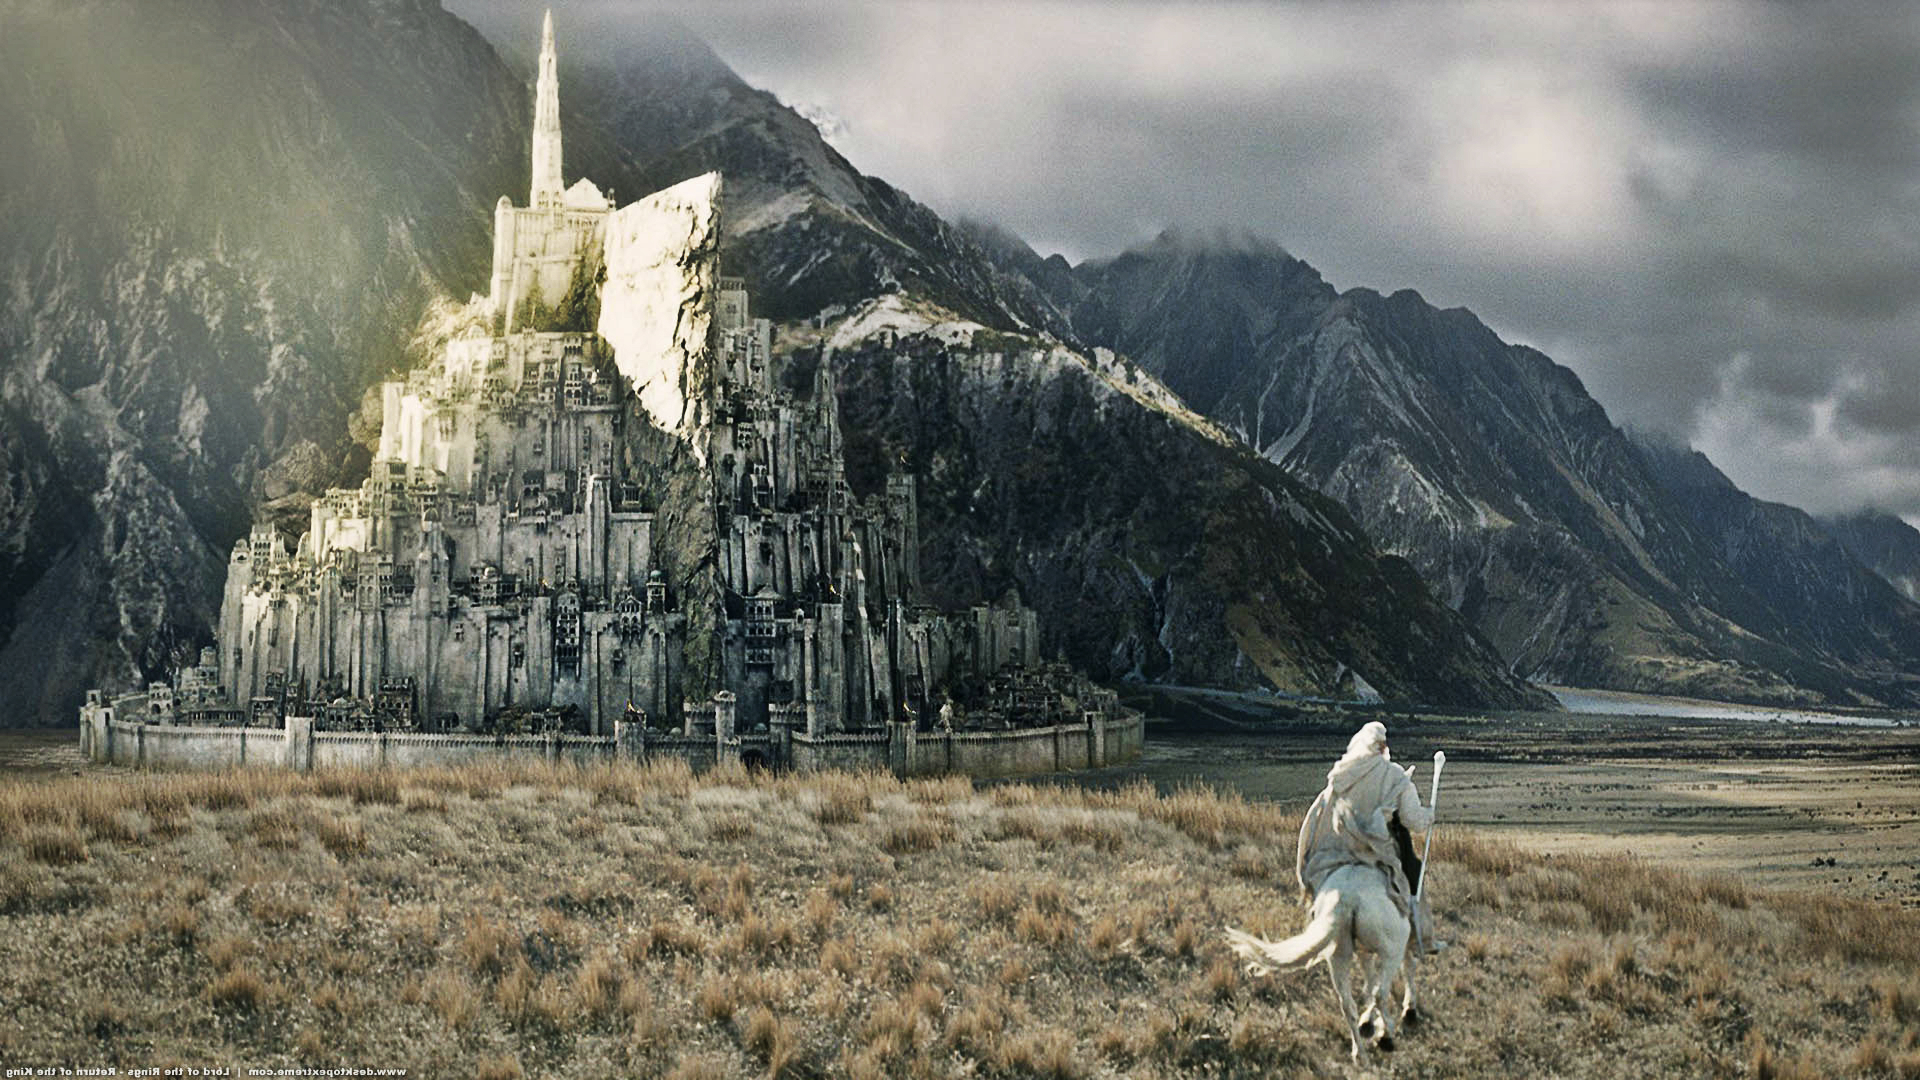 Lord Of The Rings wallpapers | Hd Wallpapers